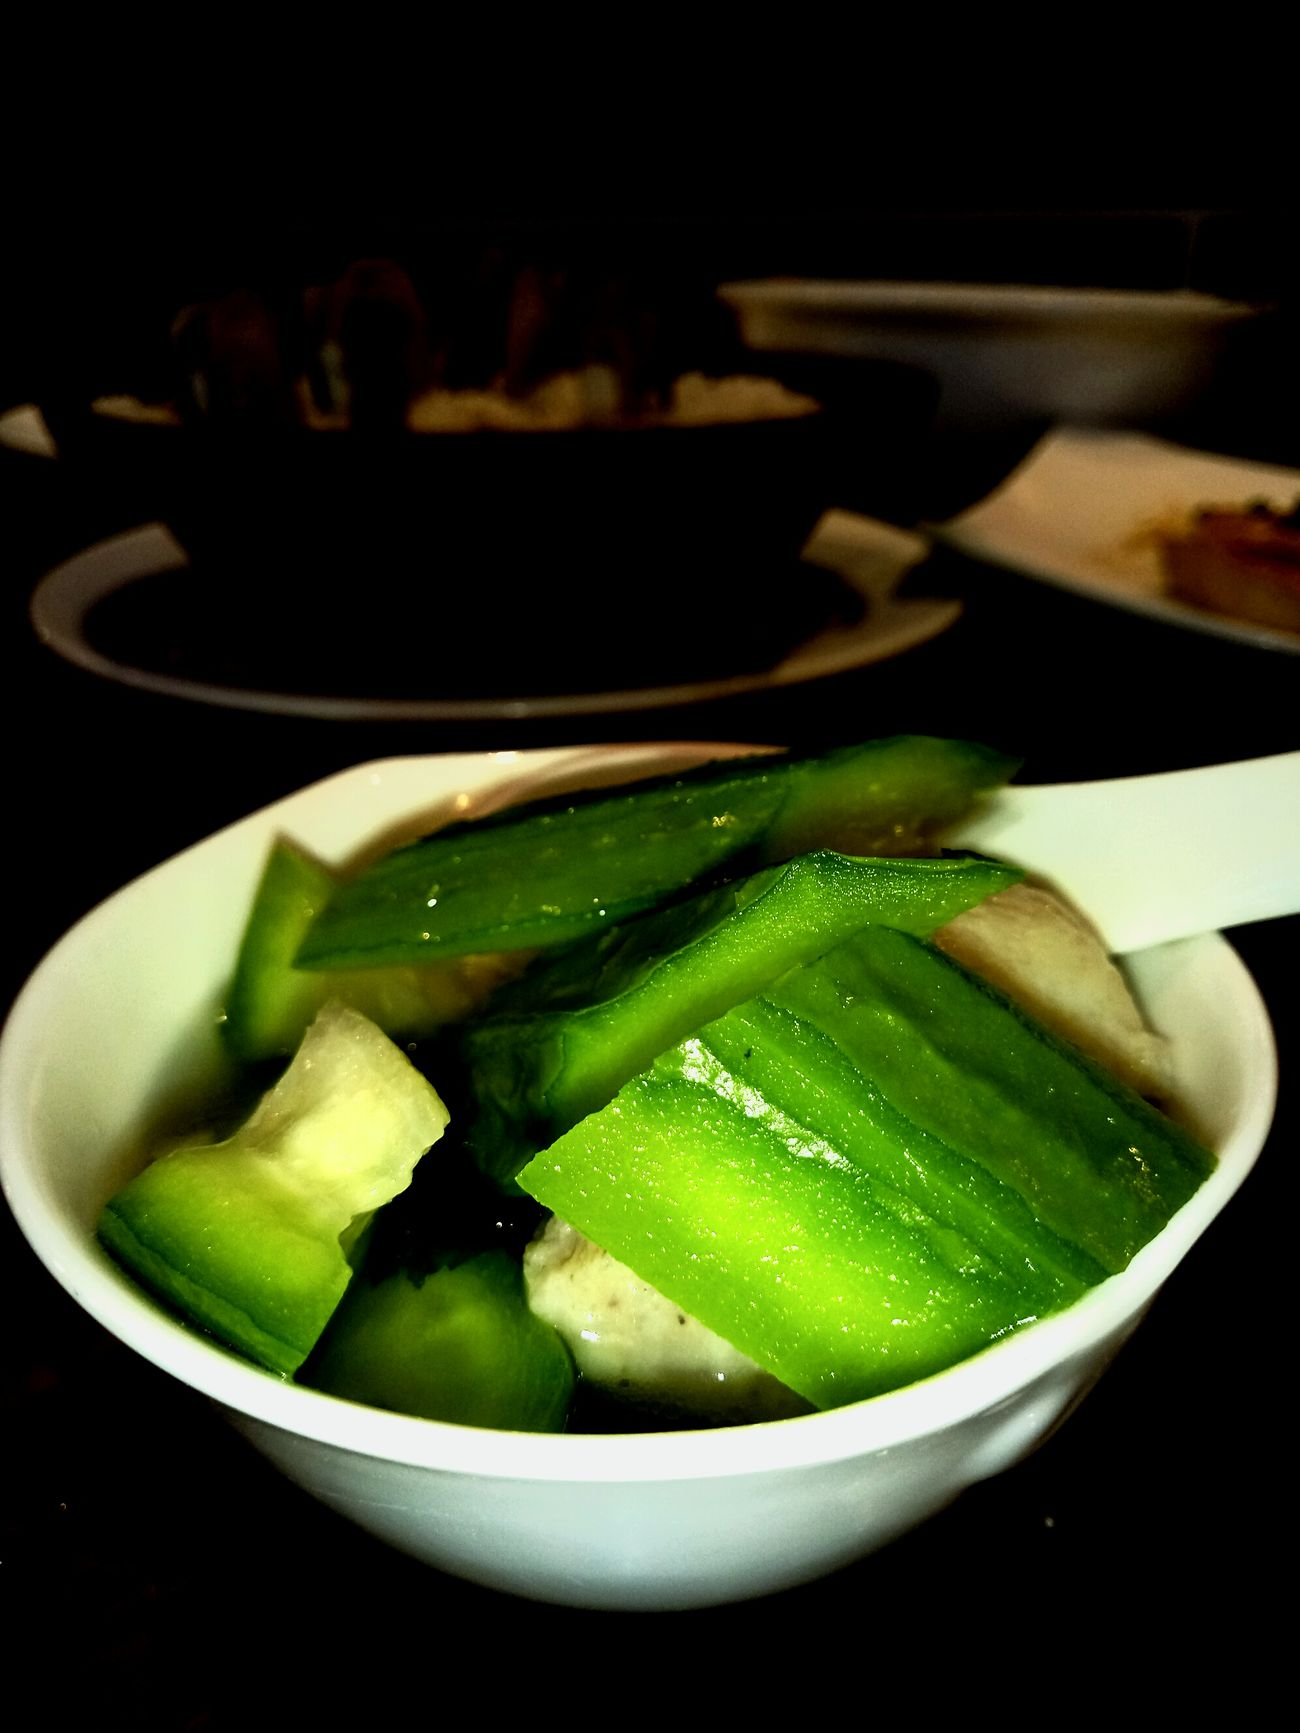 渔夫码头晚餐 Food Food And Drink Food Freshness Close-up Indoors  Green Color Bowl Focus On Foreground Plate Meal No People Ready-to-eat Indulgence Appetizer Serving Size Fresh Cooked First Eyeem Photo